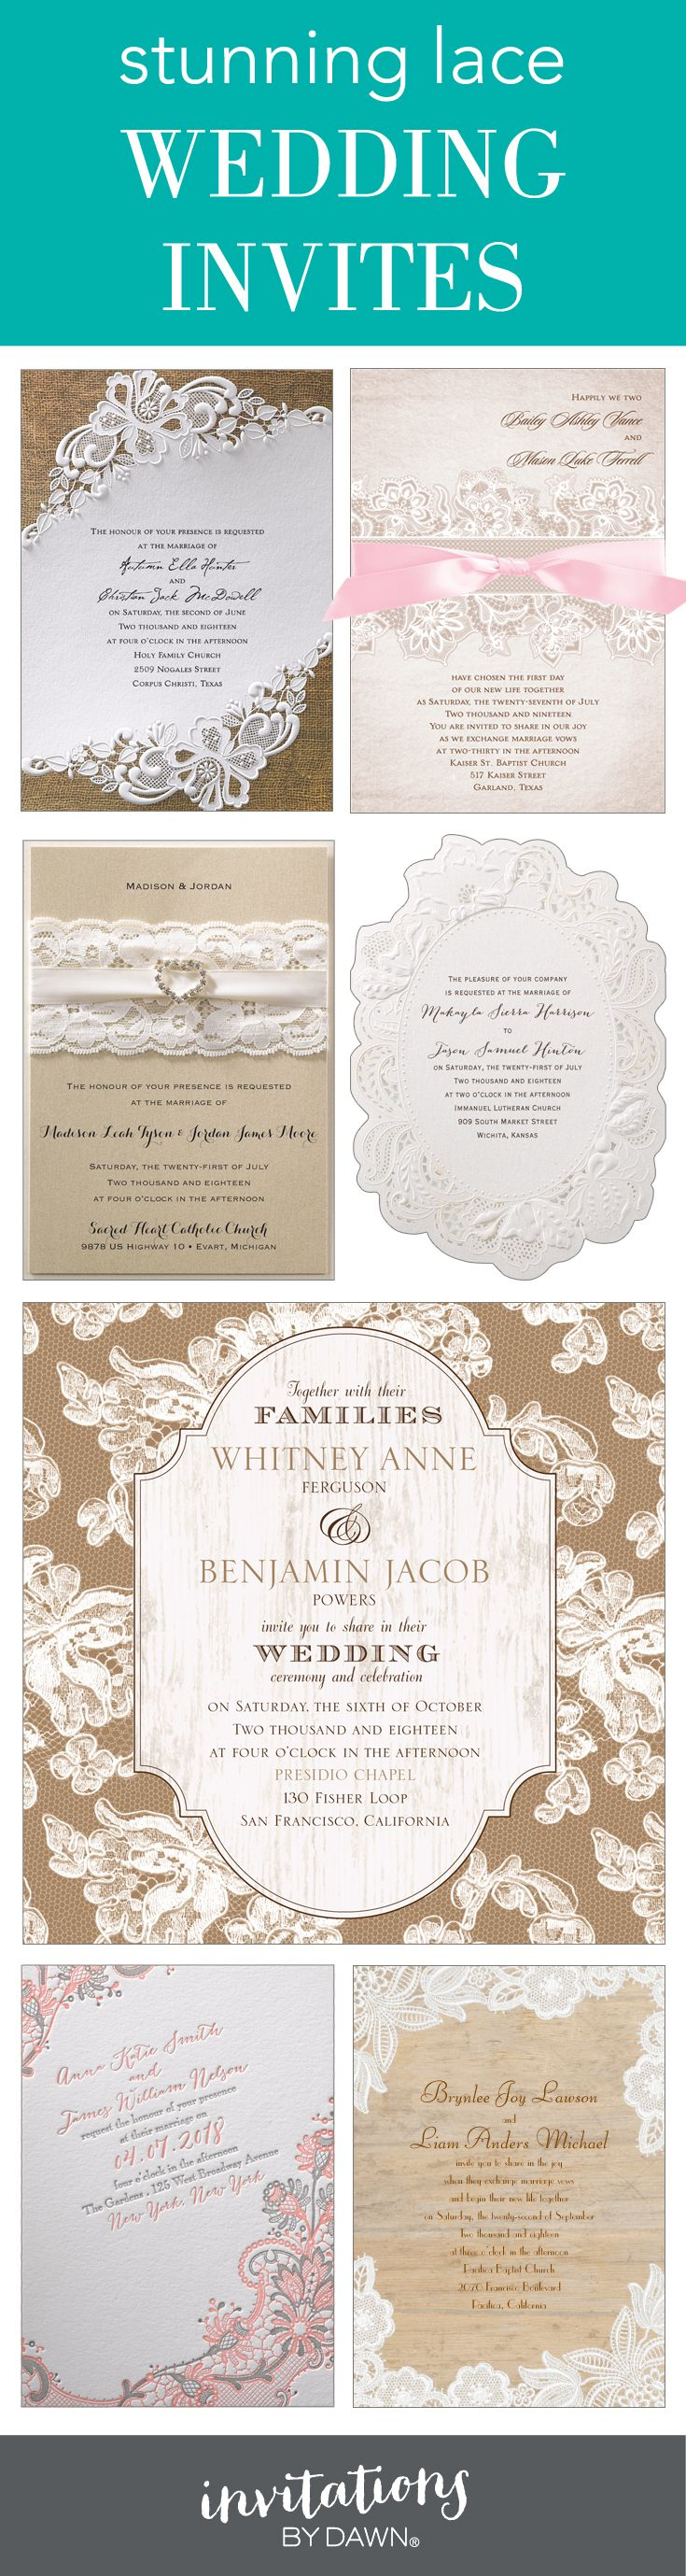 62 Best Wedding Invitations Images On Pinterest Invitation Ideas